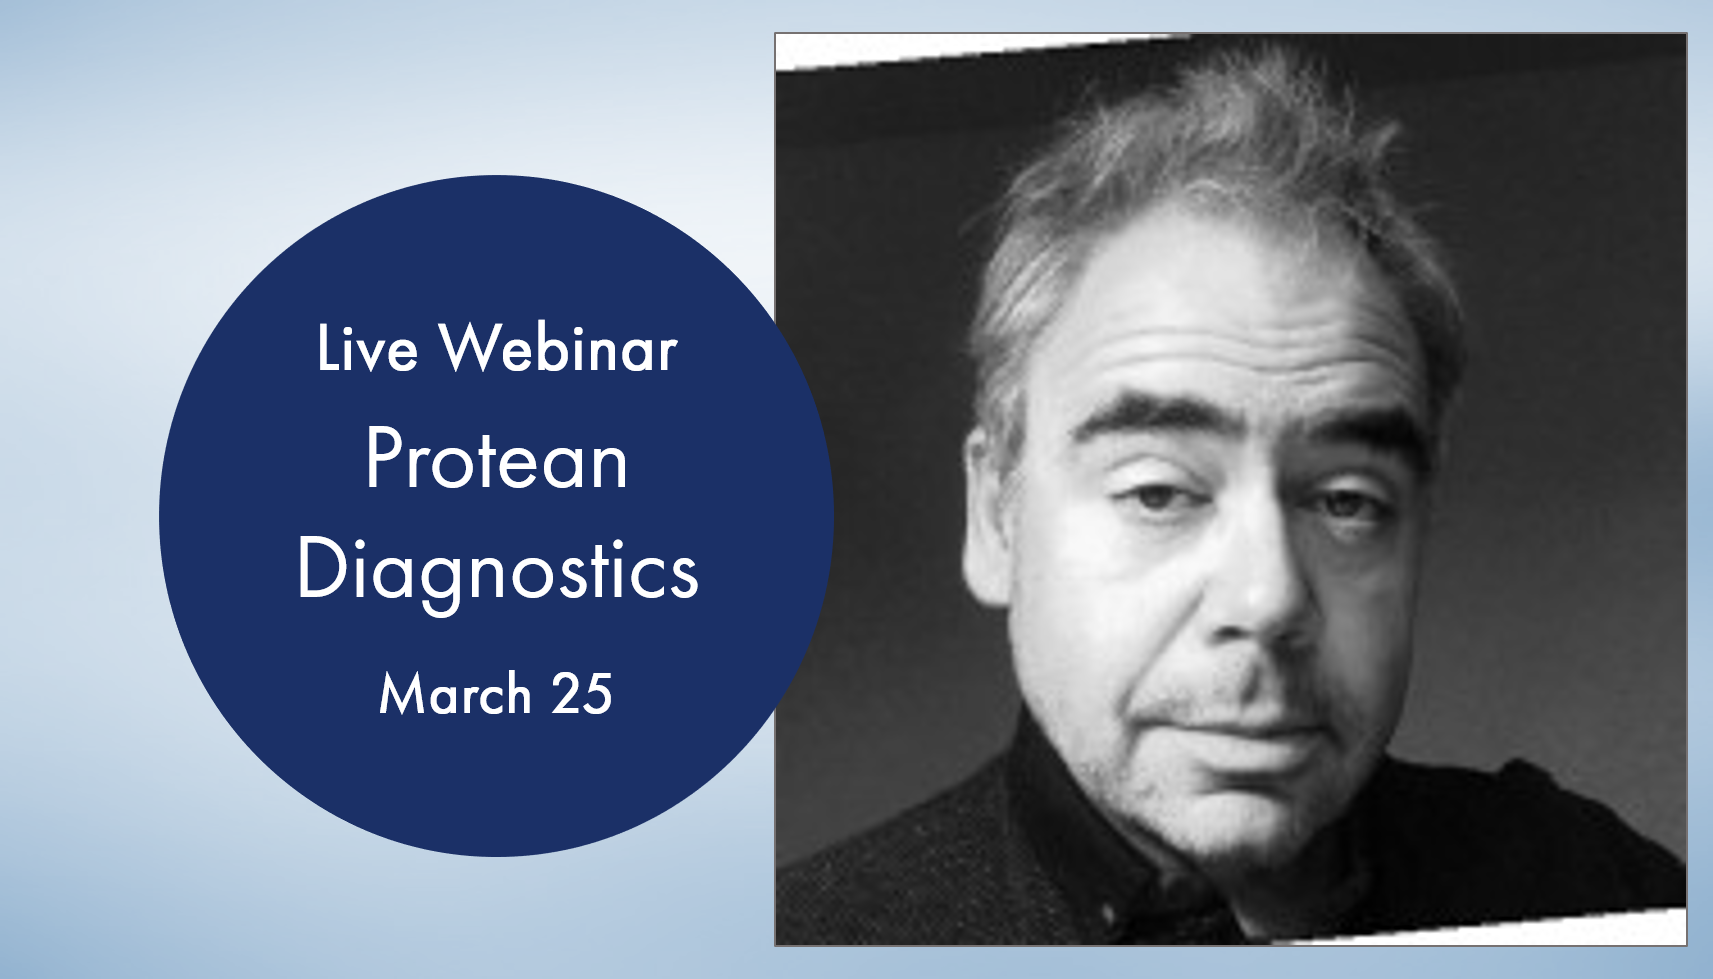 LIVE WEBINAR: Closing the Precision Medicine Gap Using Whole Exome Sequencing